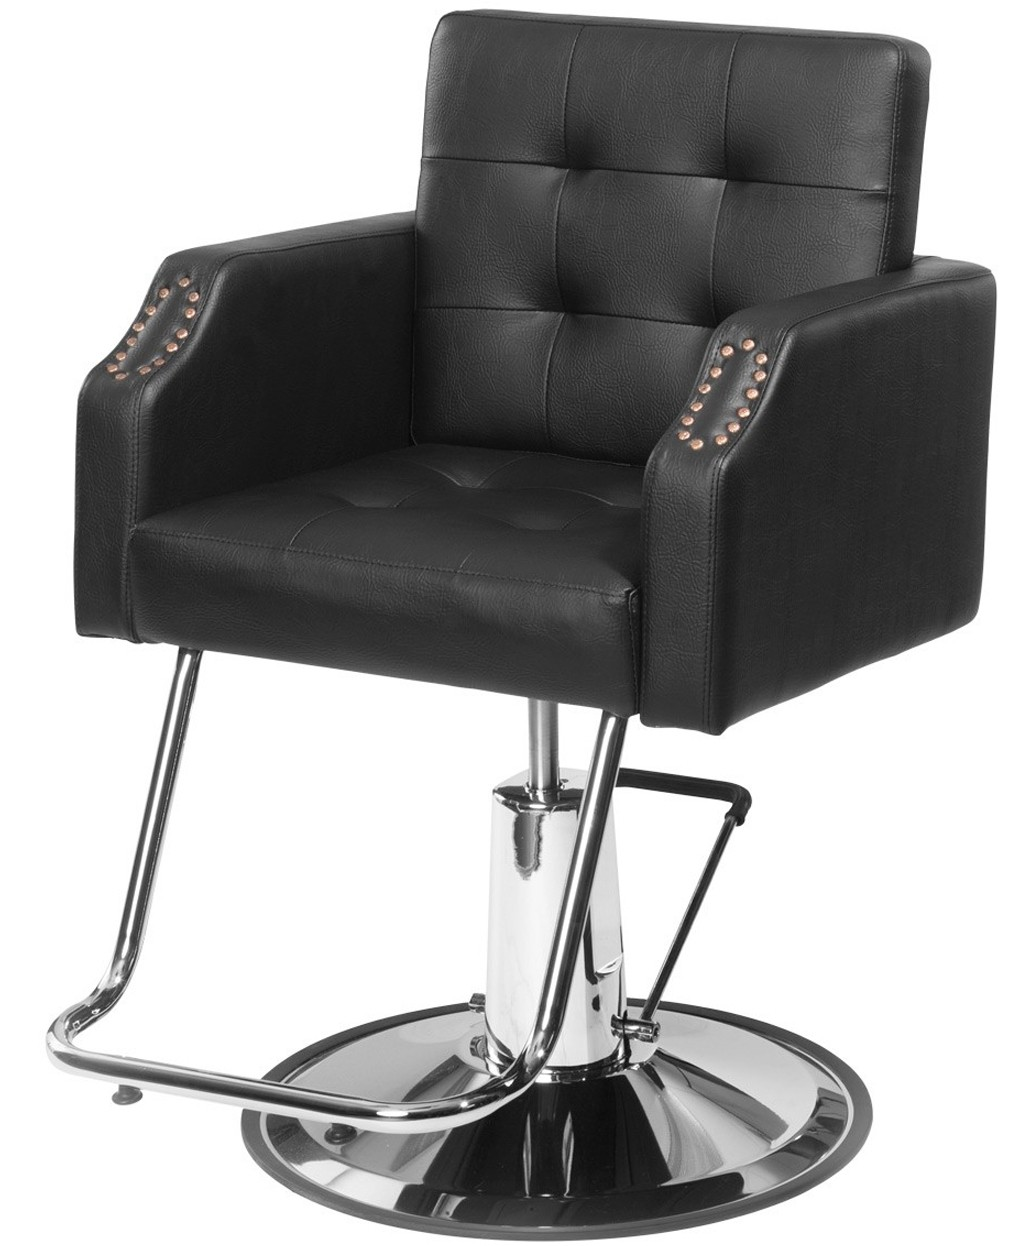 buy rite beauty salon barber equipment furniture chairs more